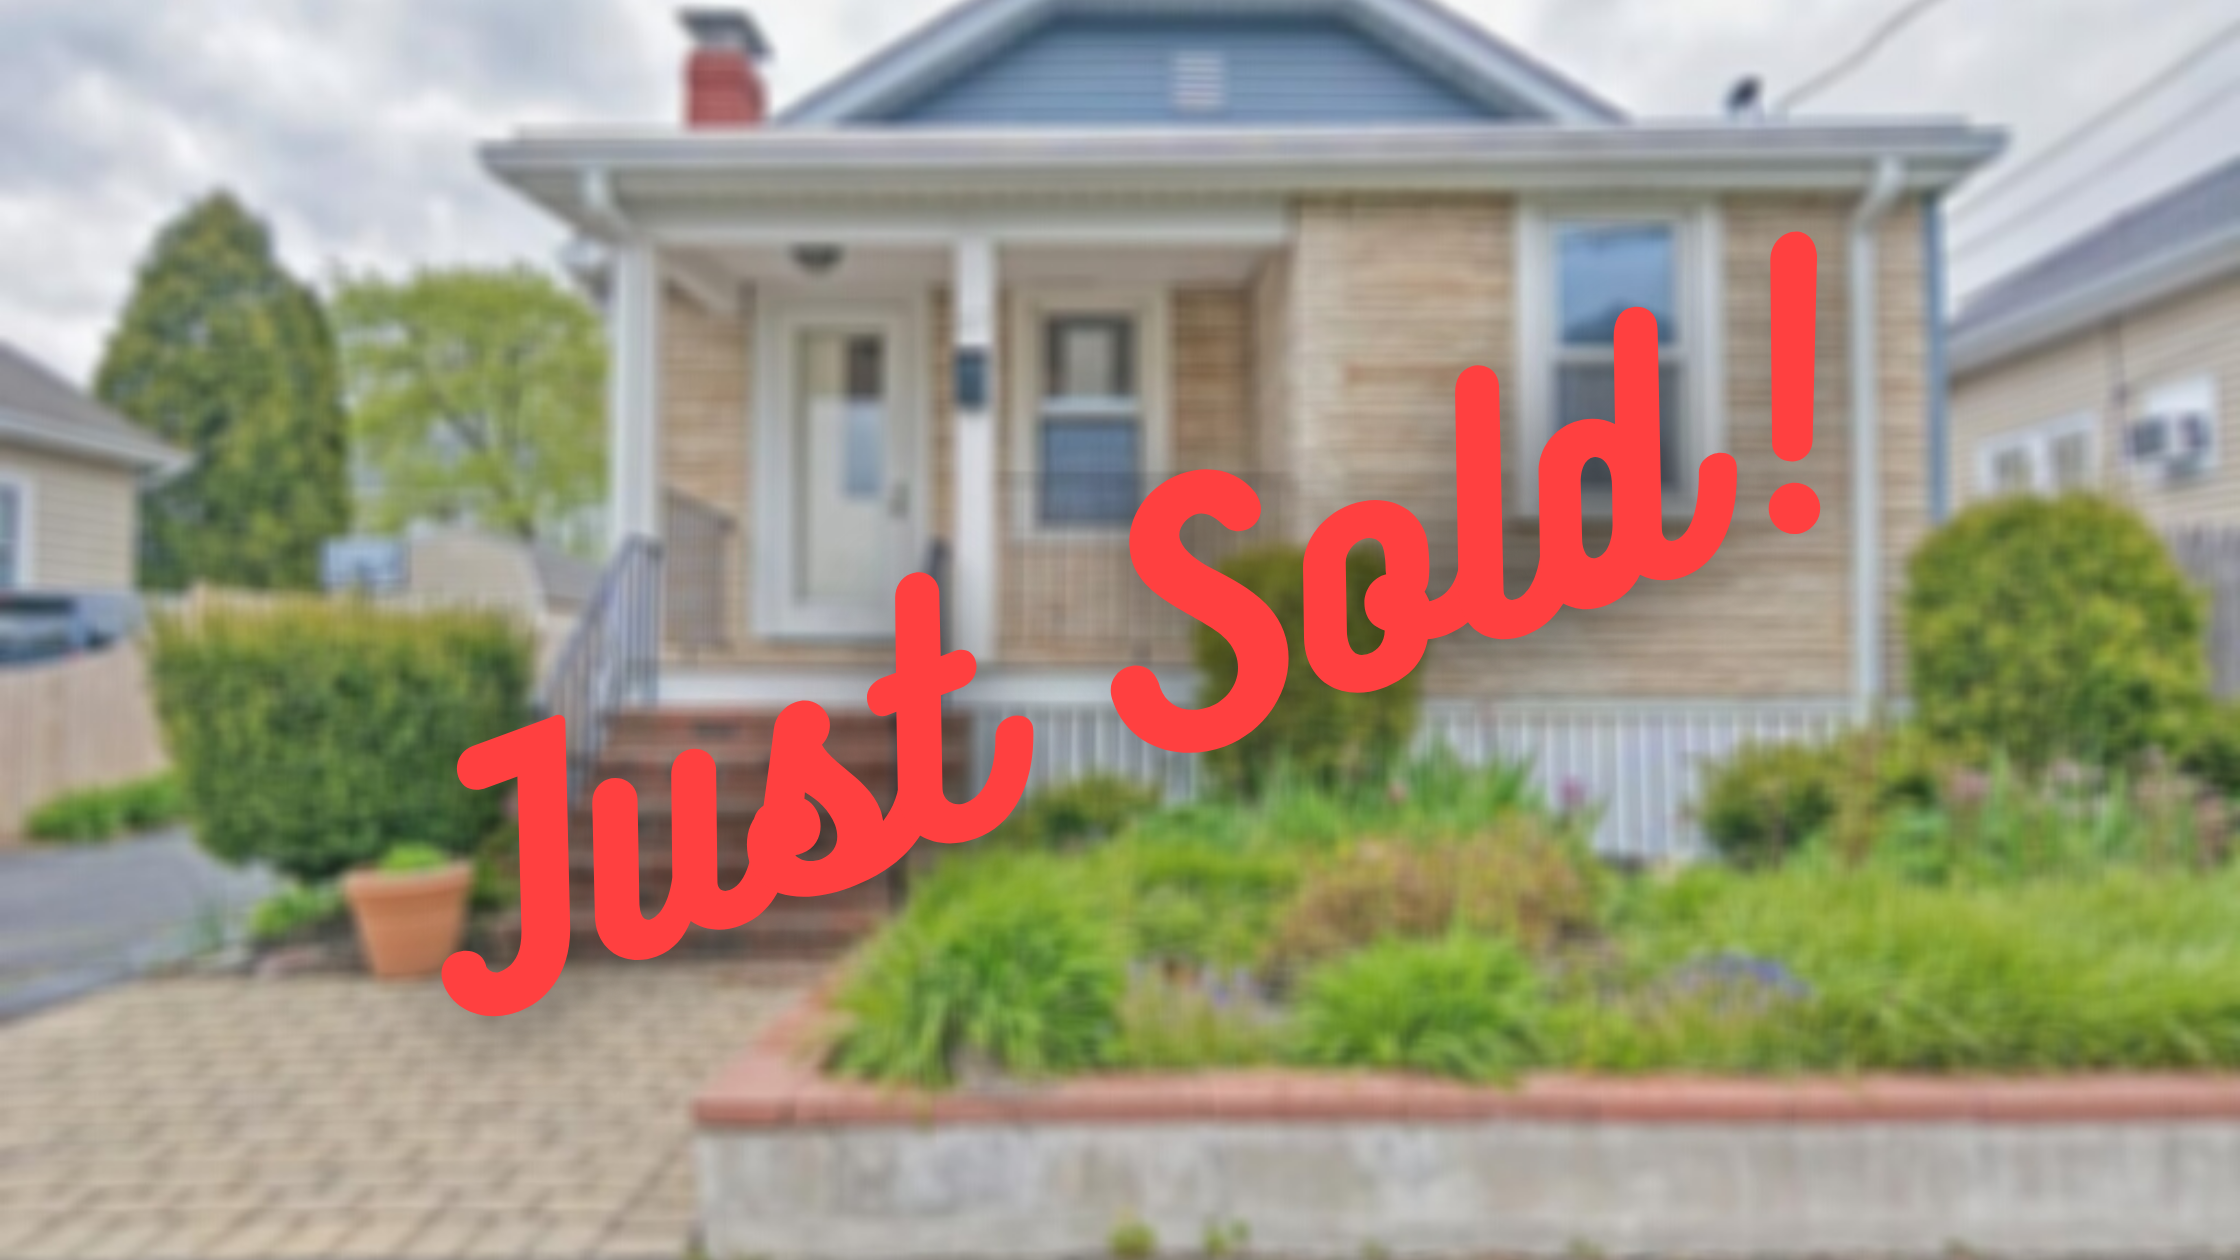 JUST SOLD - 67 Campbell St, Quincy, MA 02169